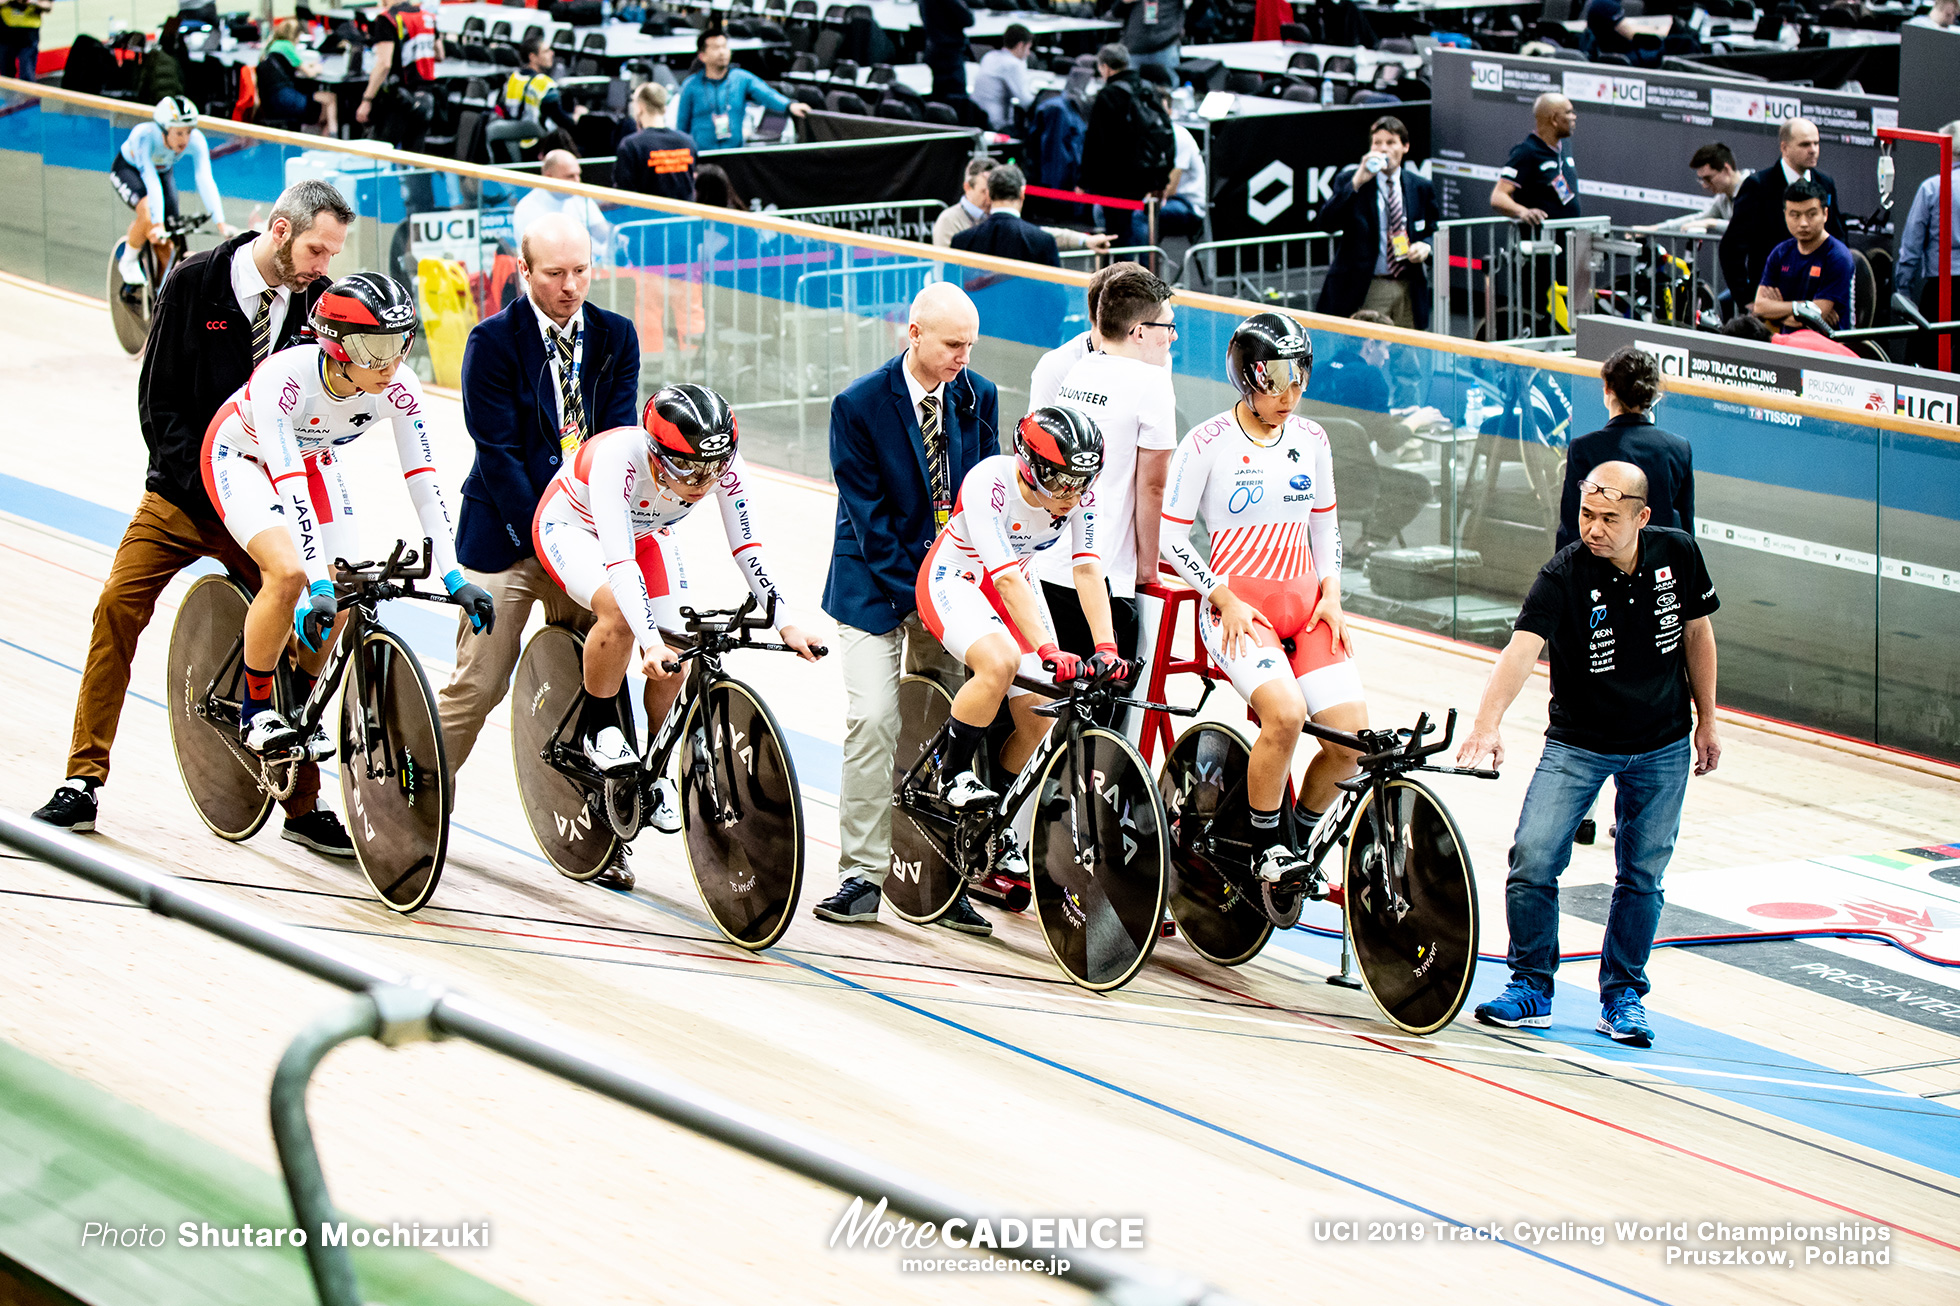 Women's Team Pursuit / 2019 Track Cycling World Championships Pruszków, Poland